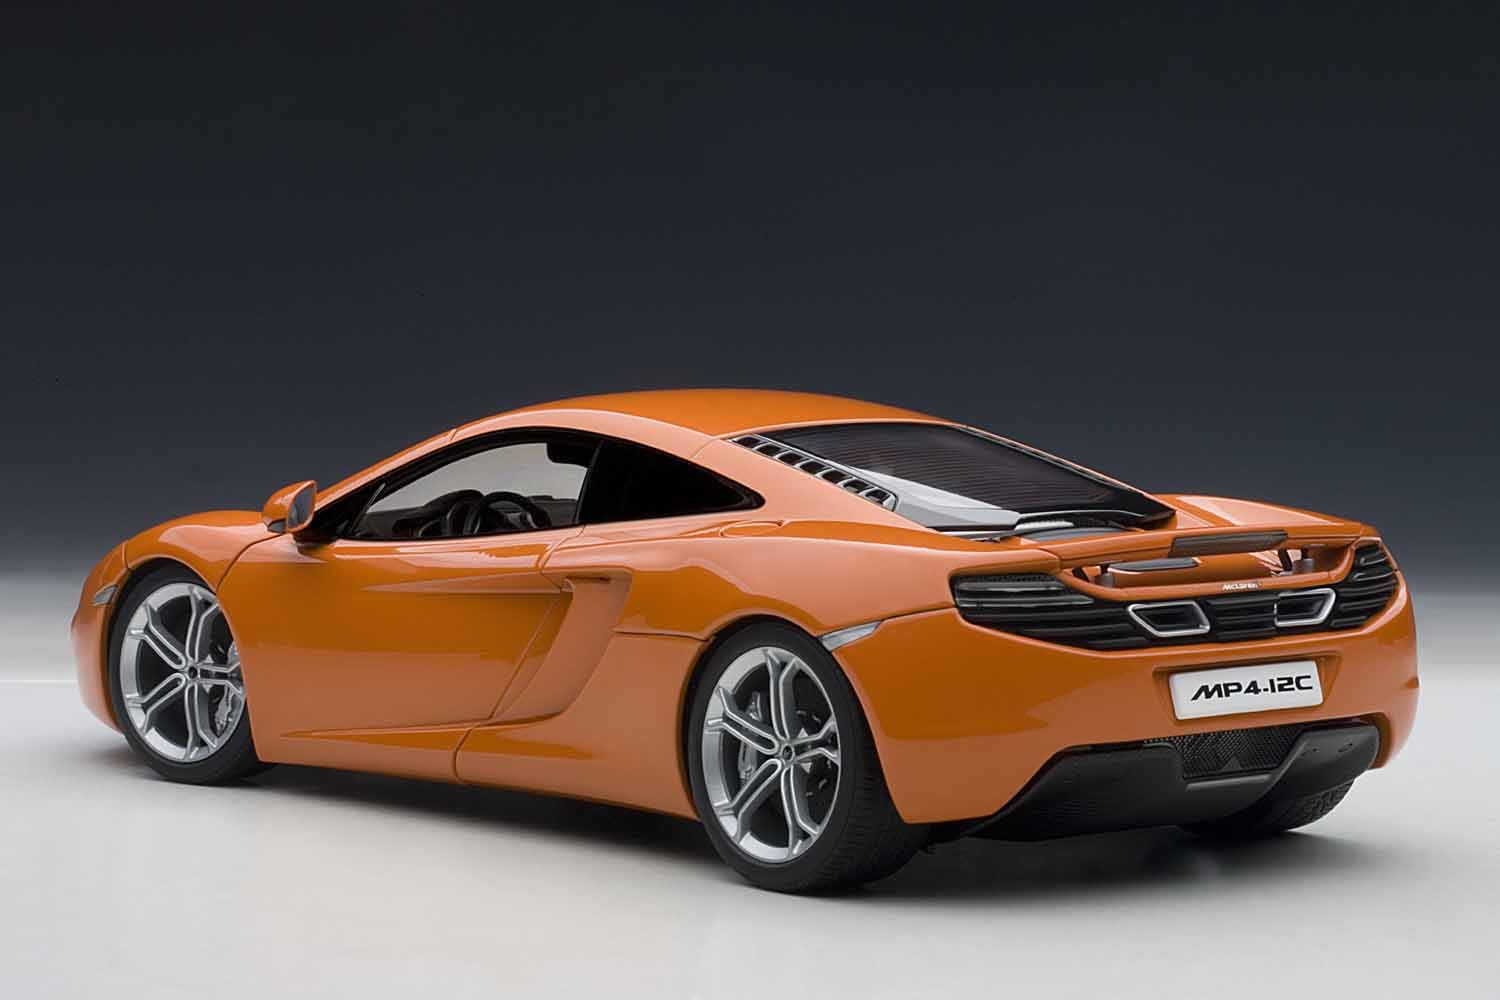 Amazon.com: AUTOart 76006 1/18 - Signature: McLaren MP4-12C ...